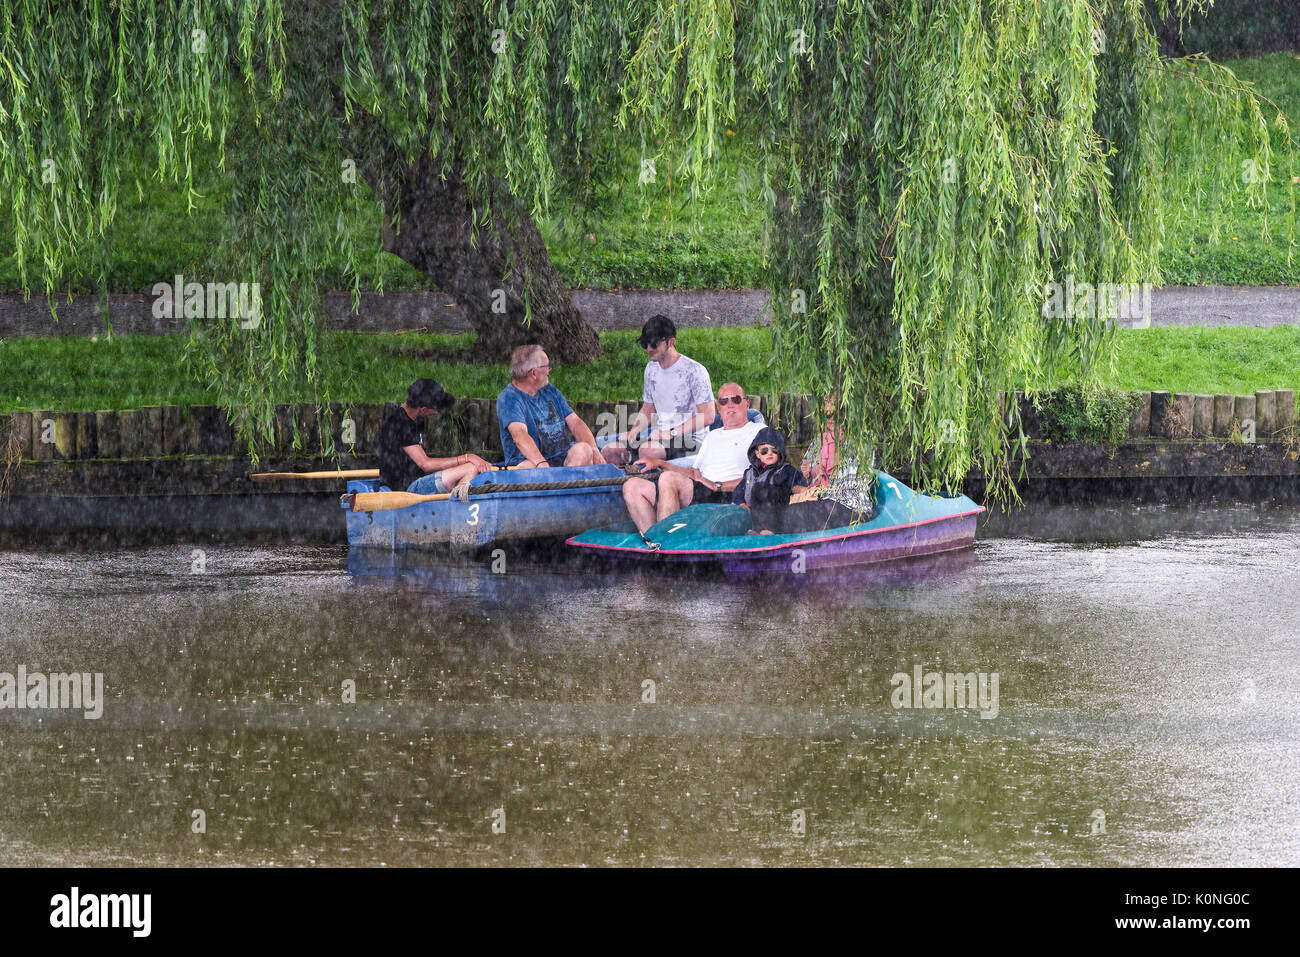 Holidaymakers on a boating lake sheltering under a willow tree from a torrential downpour. - Stock Image